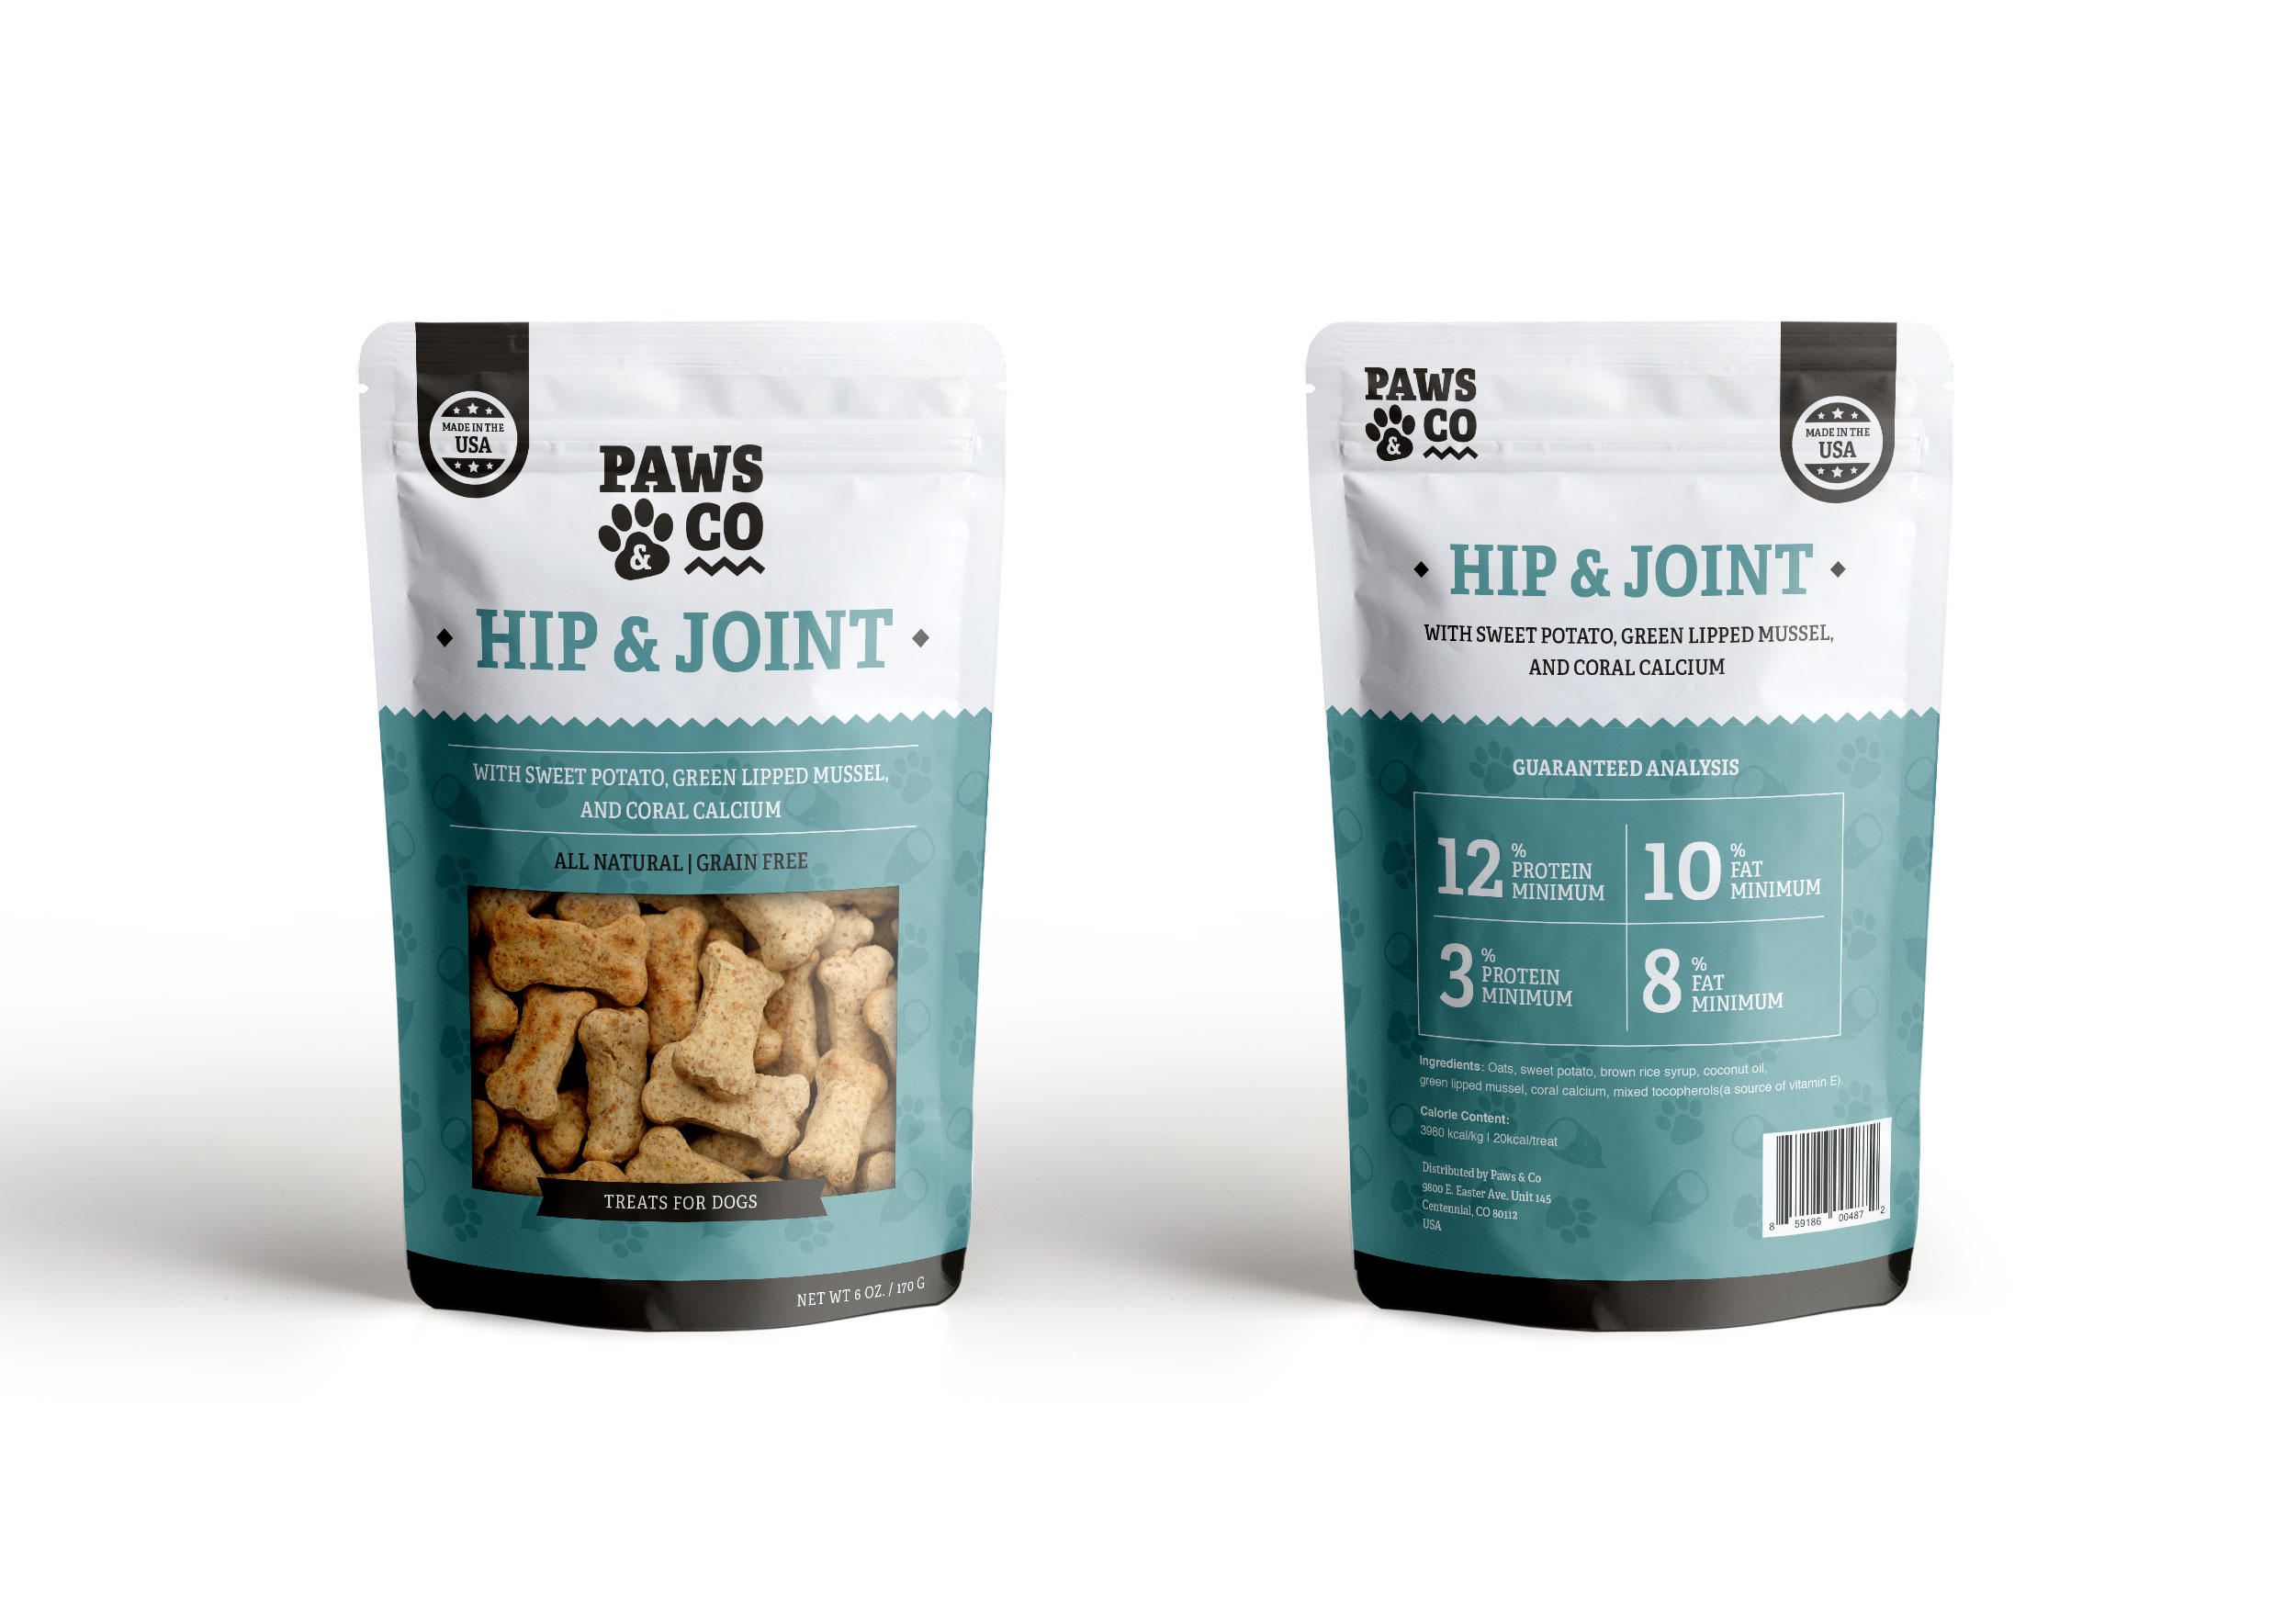 Paws & Co Hip & Joint Packaging